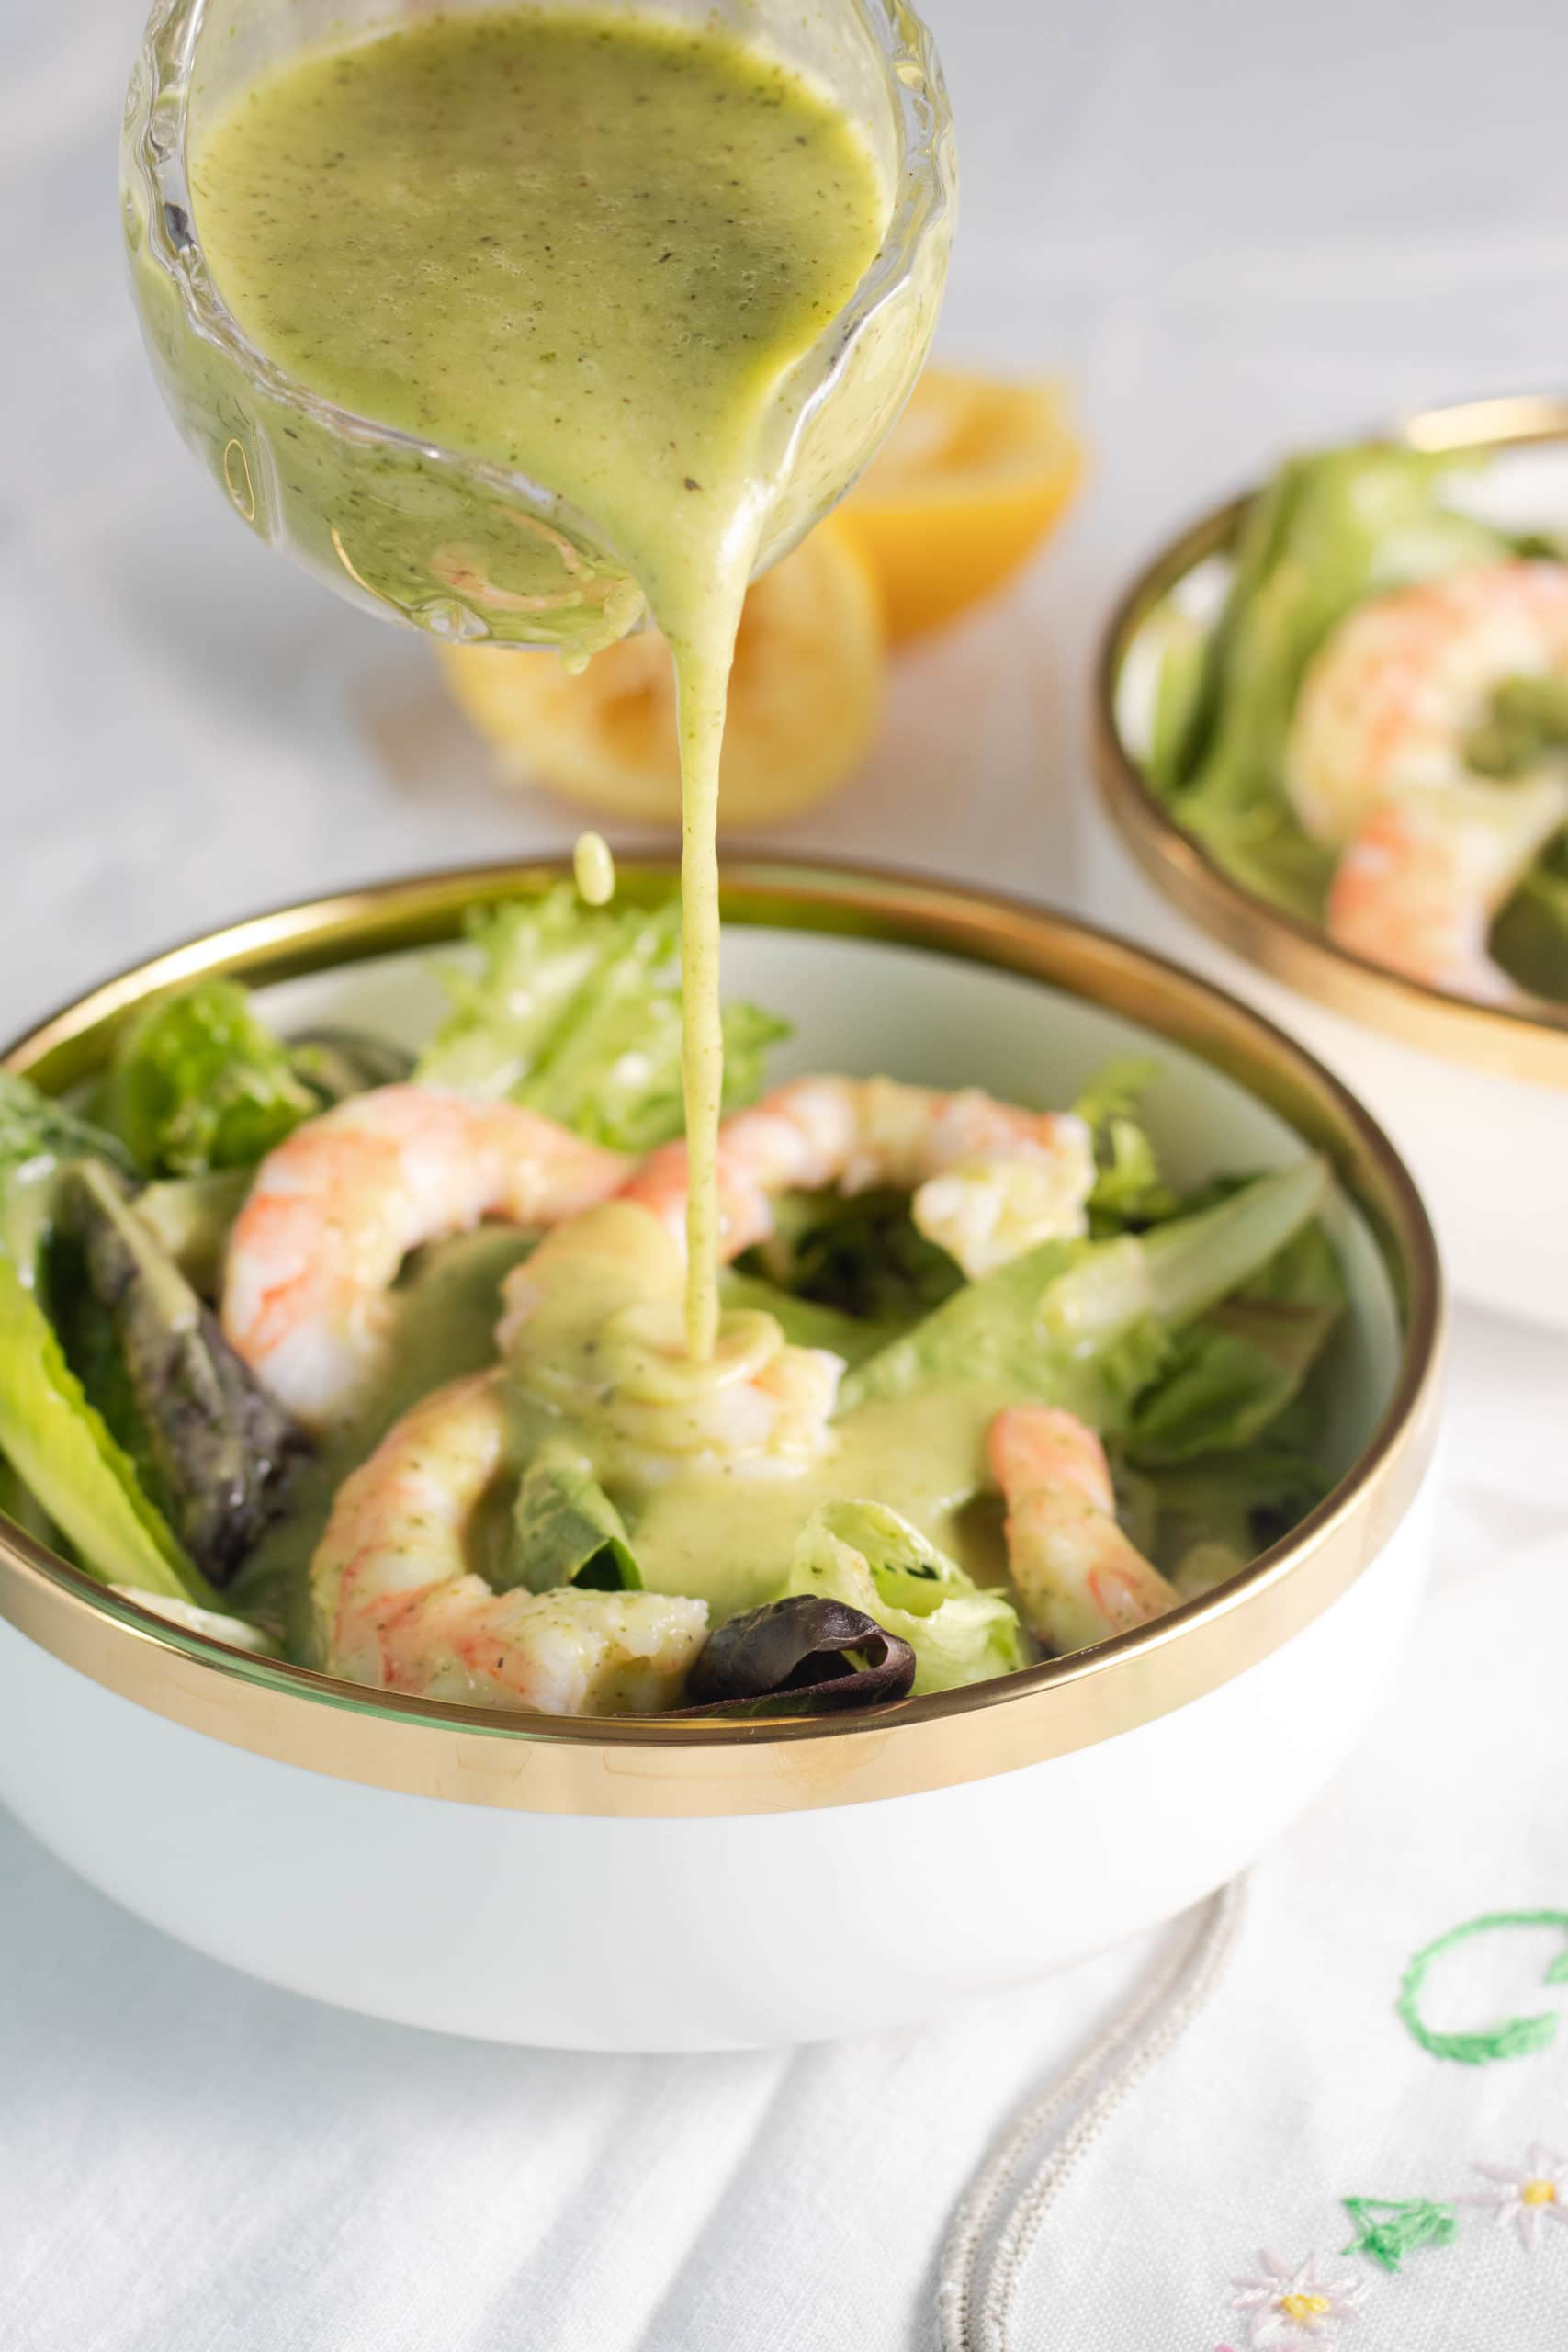 Low carb salad dressing on a salad with shrimp.